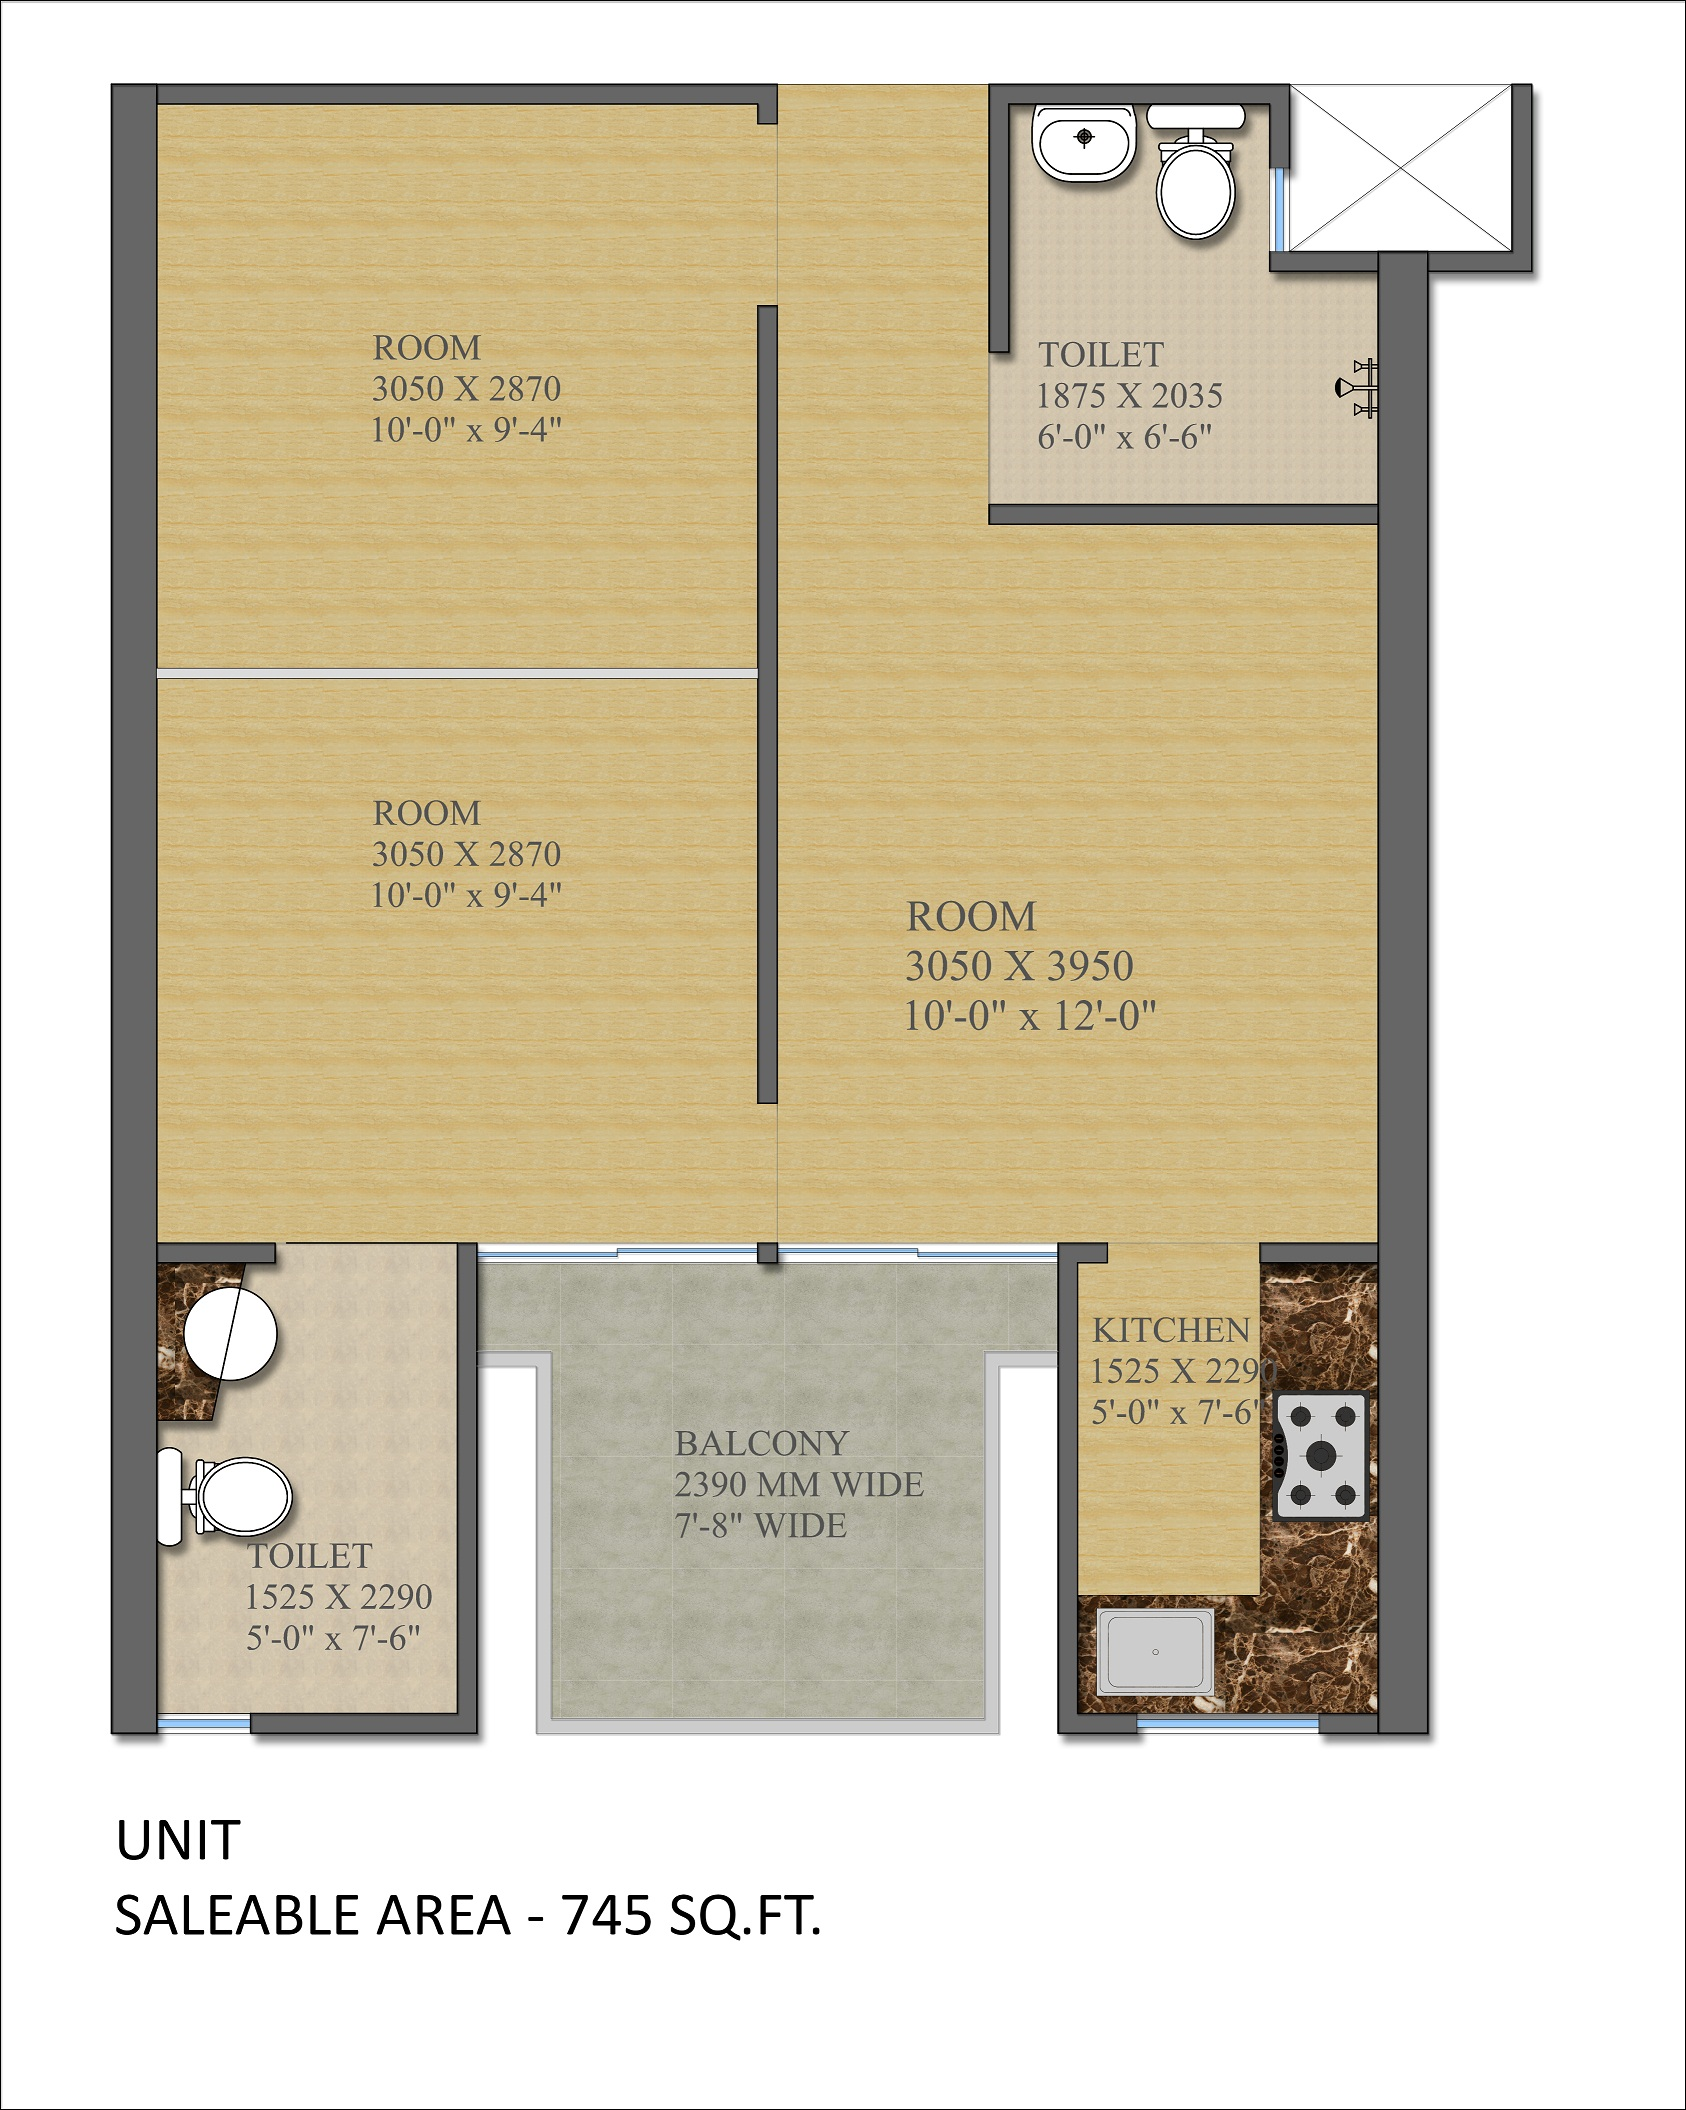 gaur city 2 14th avenue apartment 3bhk 745sqft 1